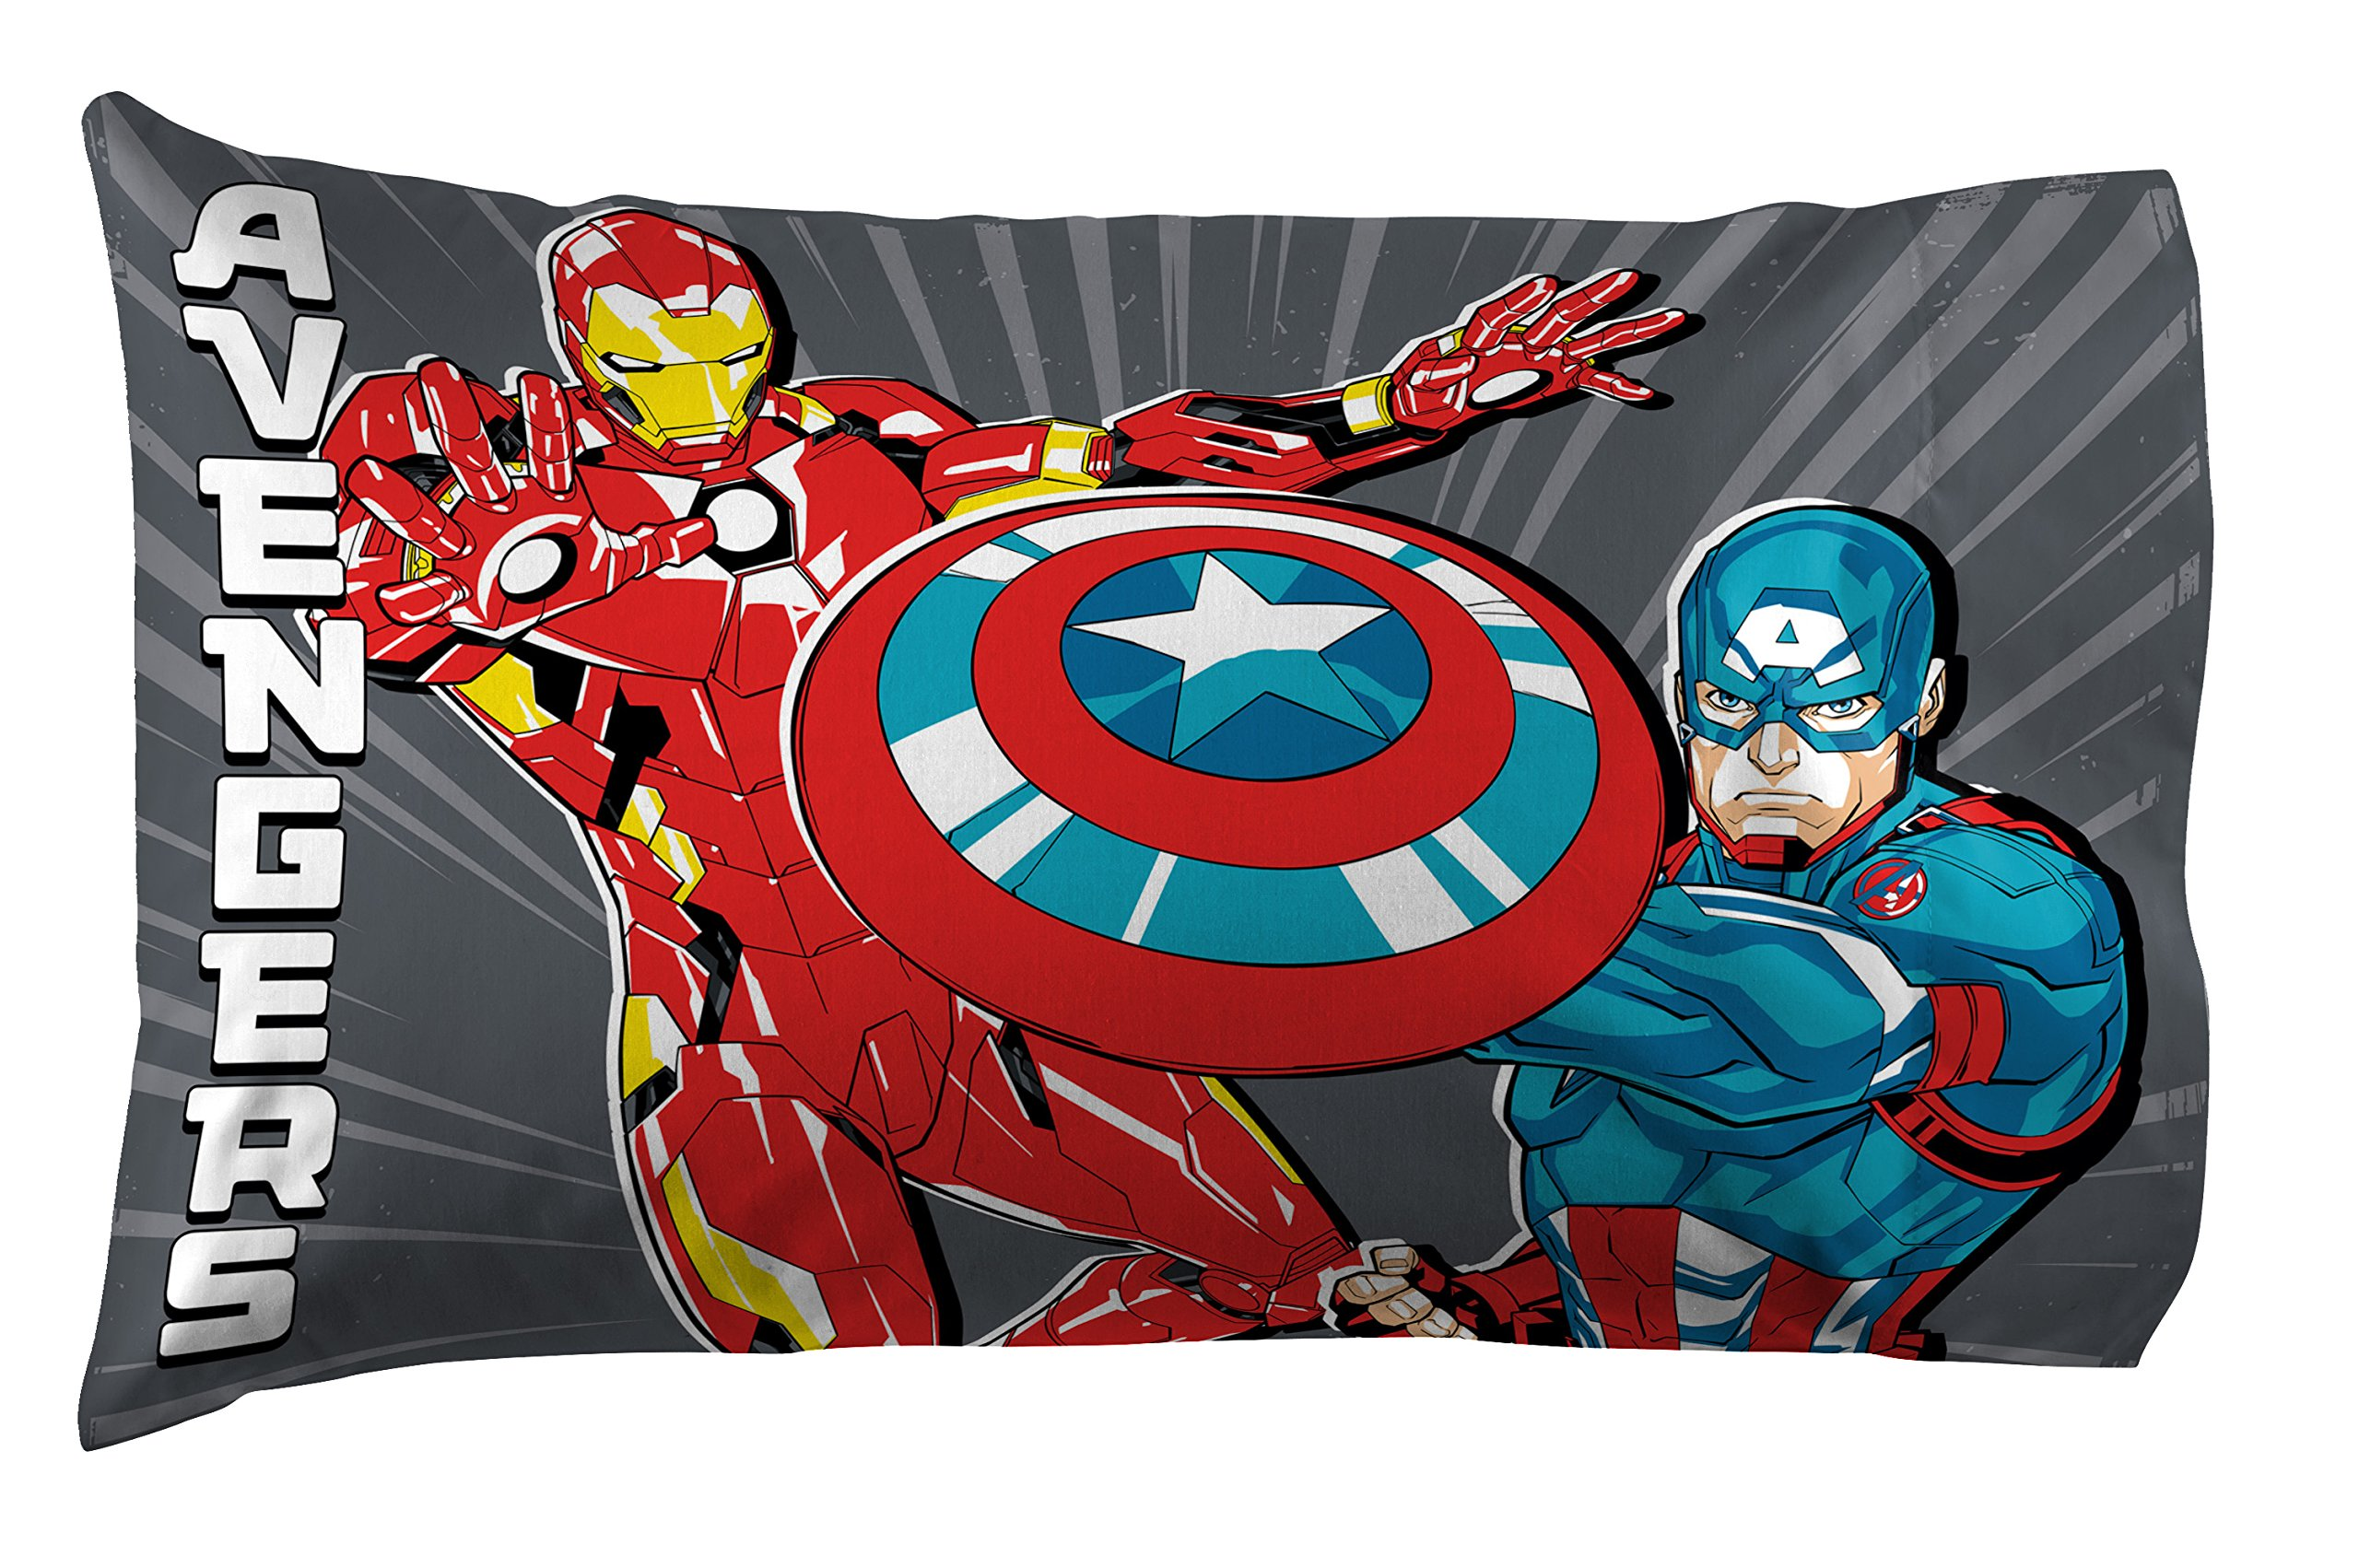 Jay Franco Marvel Avengers Mightiest Heroes 1 Pack Pillowcase - Double-Sided Kids Super Soft Bedding - Features Iron Man, Captain America, Thor & Hulk (Official Marvel Product)